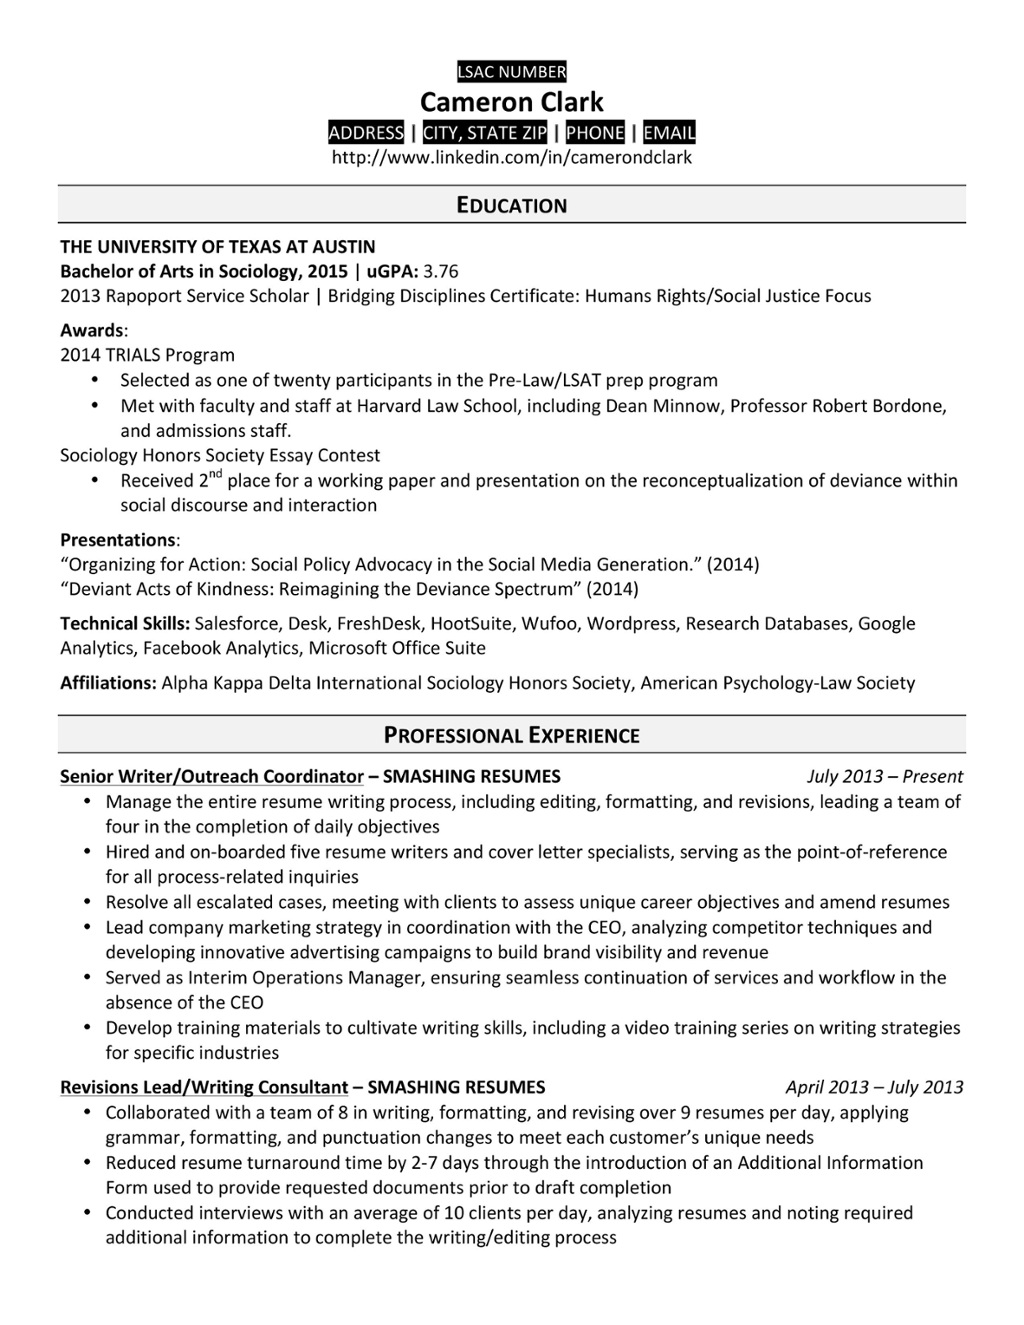 A Law School Resume That Made The Cut Top Law Schools